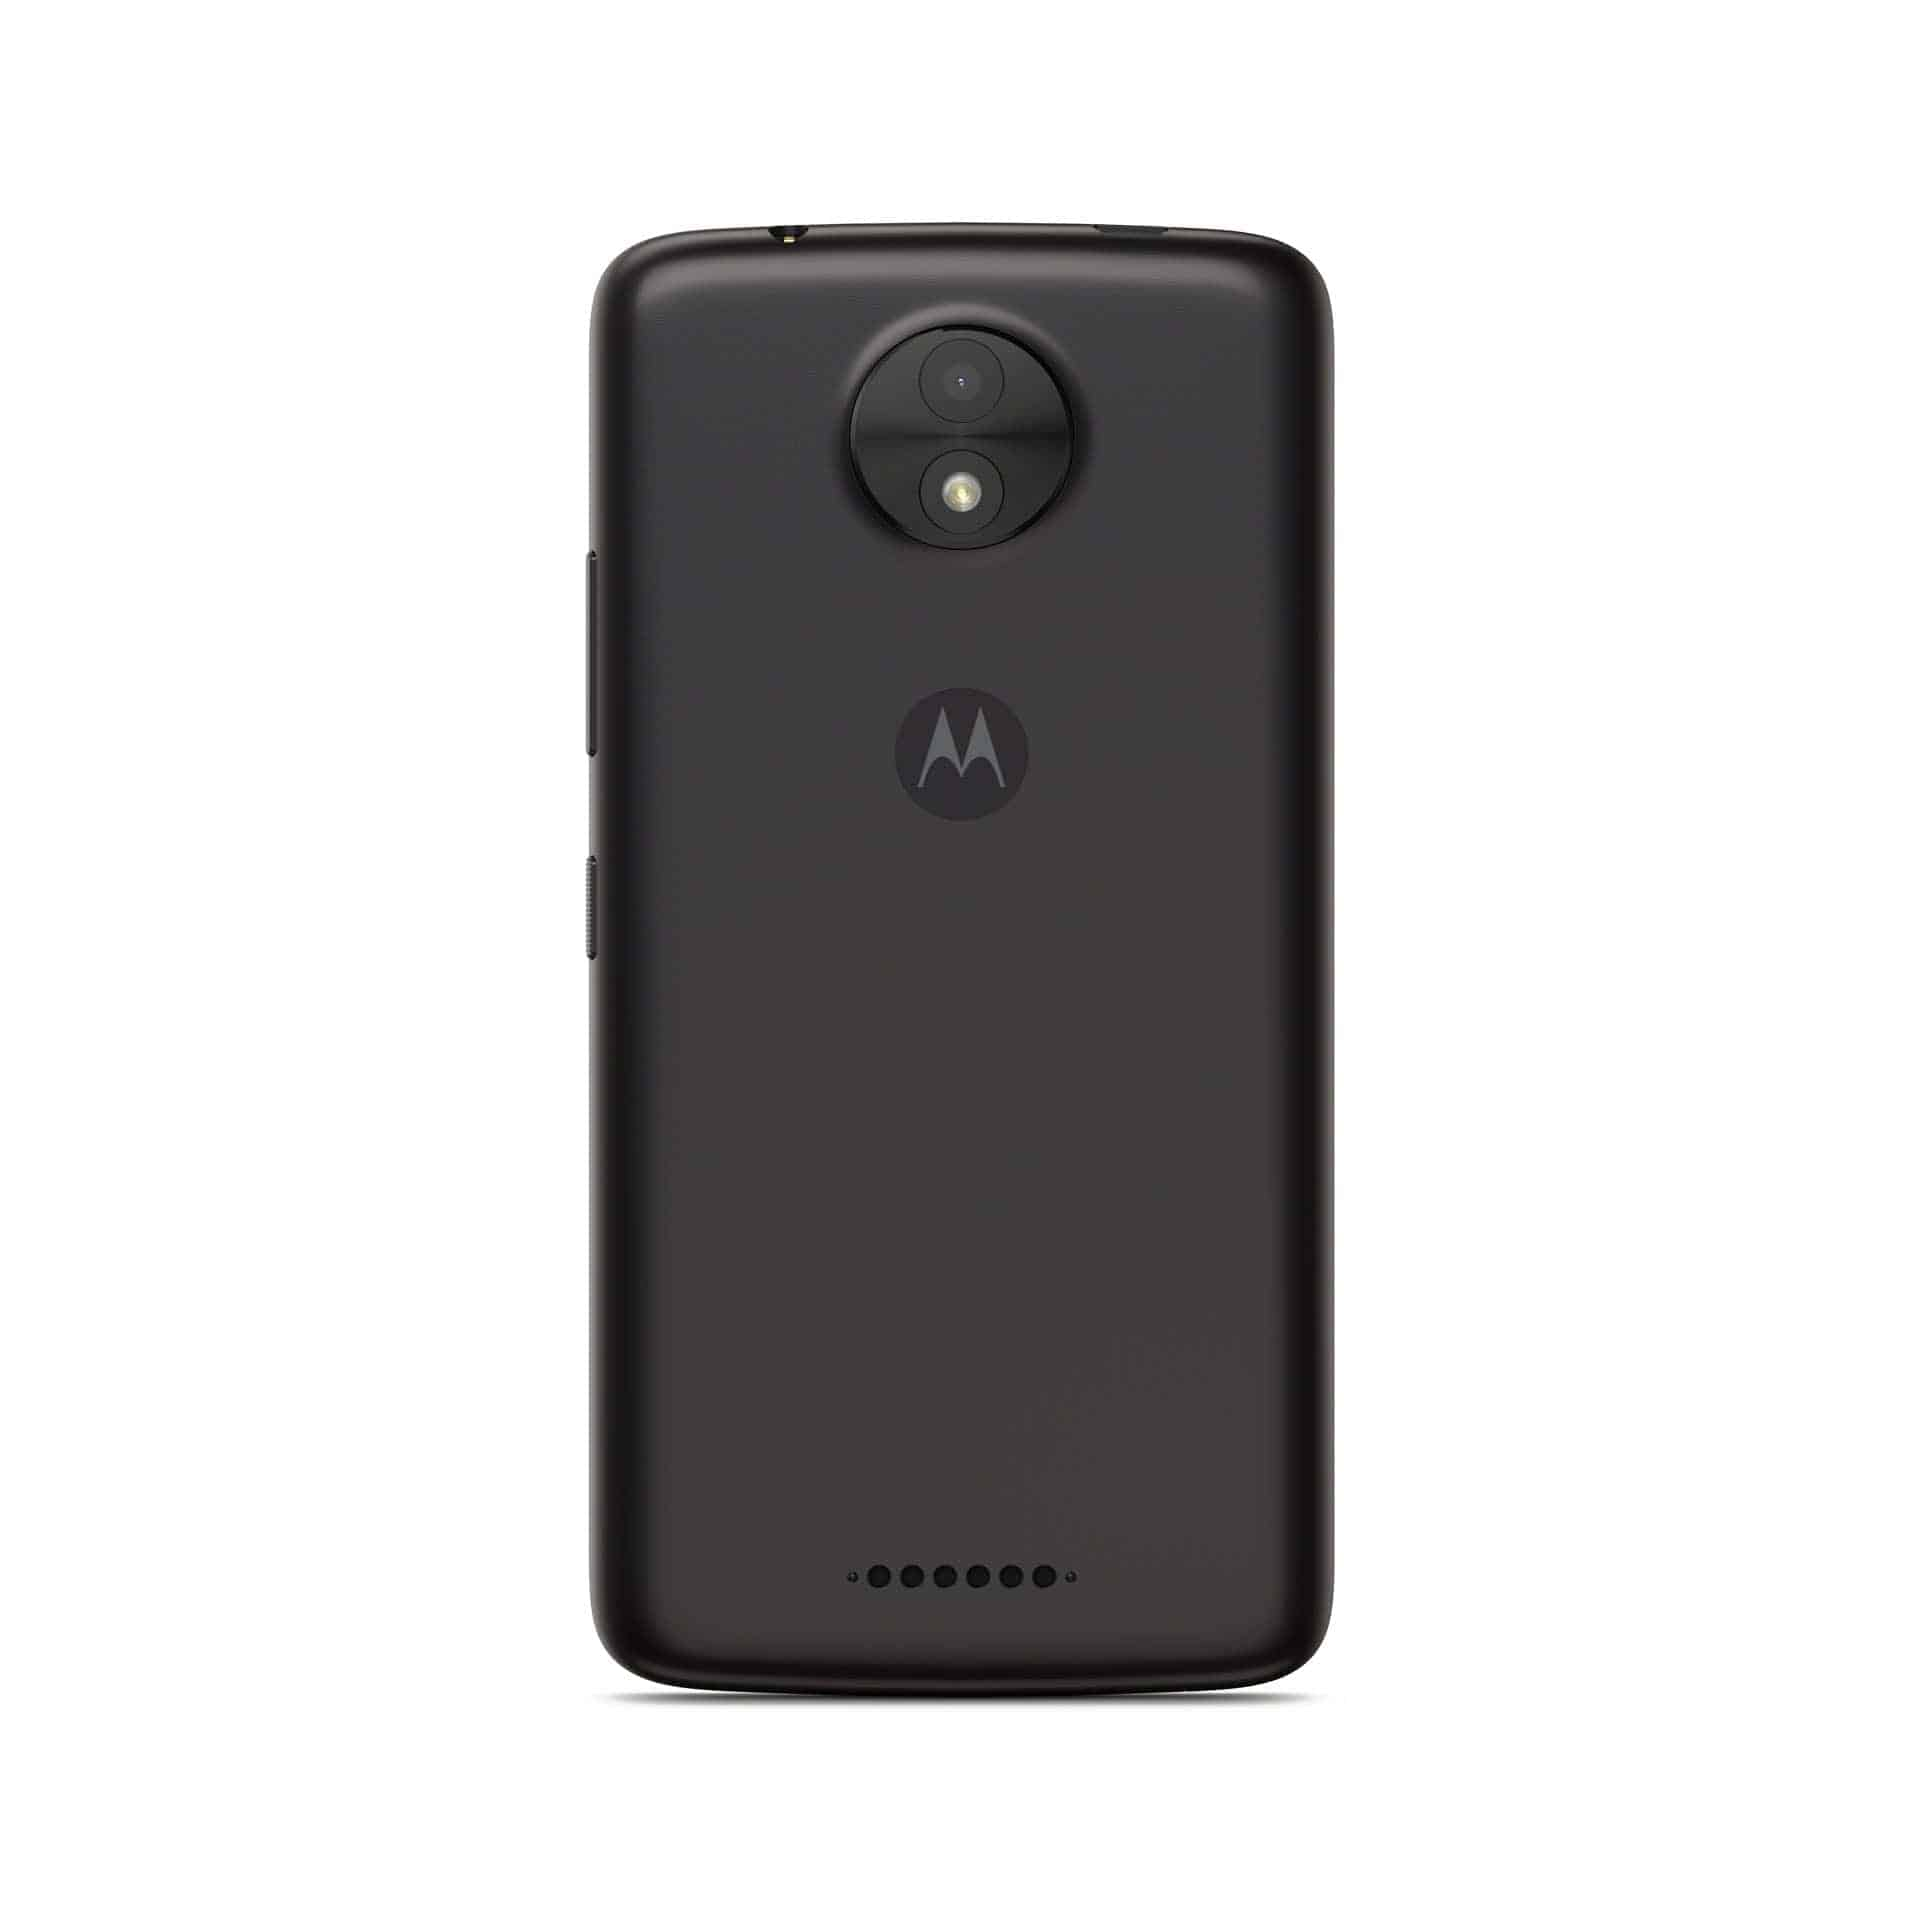 Moto C Starry Black Back Side